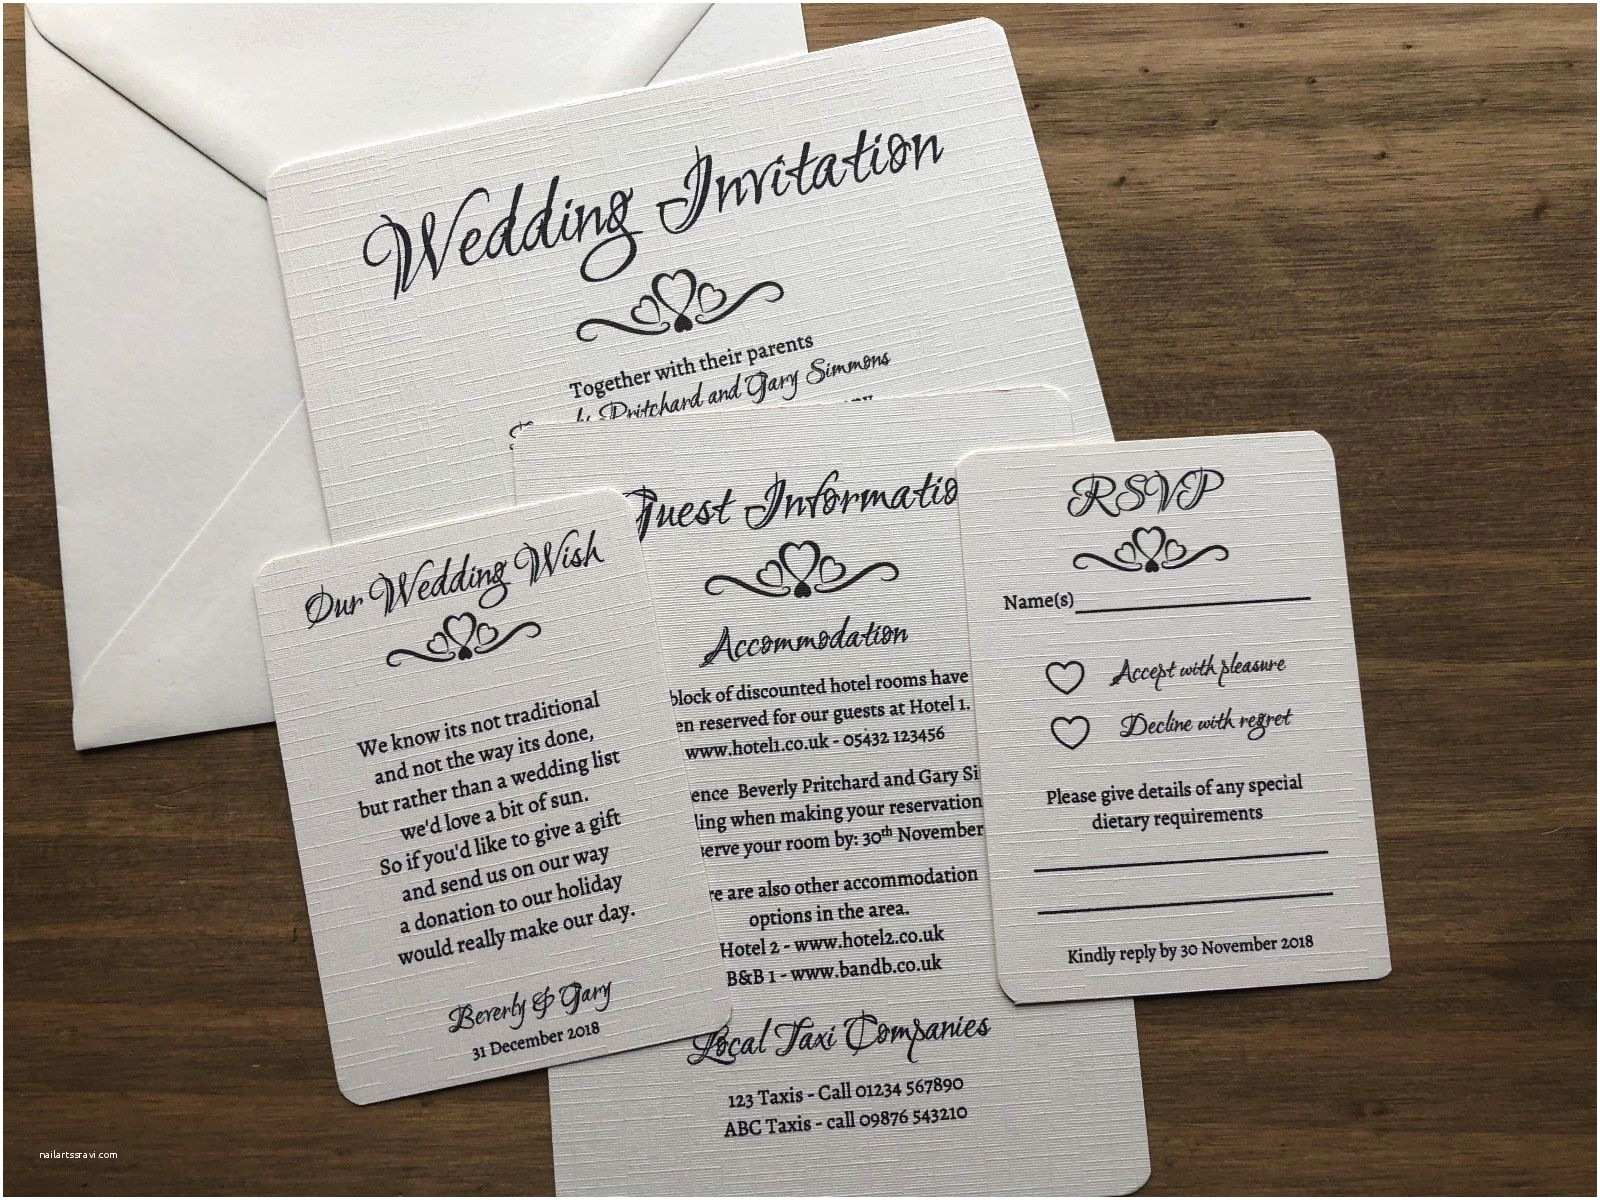 Wedding Invitations Cheap Packs Personalised Wedding Day evening Invitation Pack Of 10